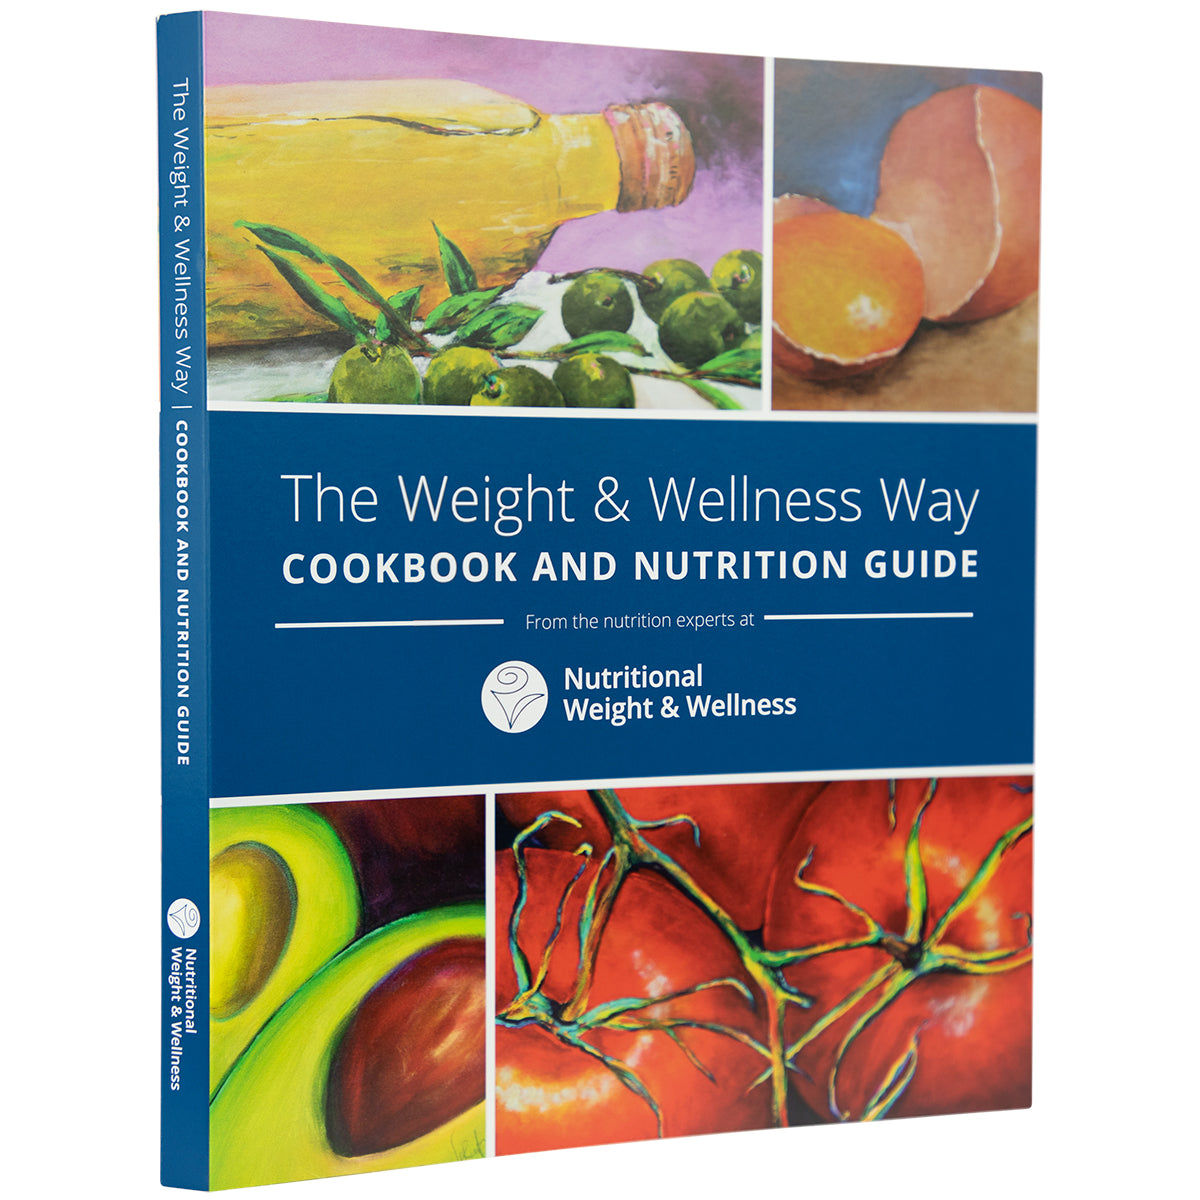 The Weight & Wellness Way Cookbook and Nutrition Guide